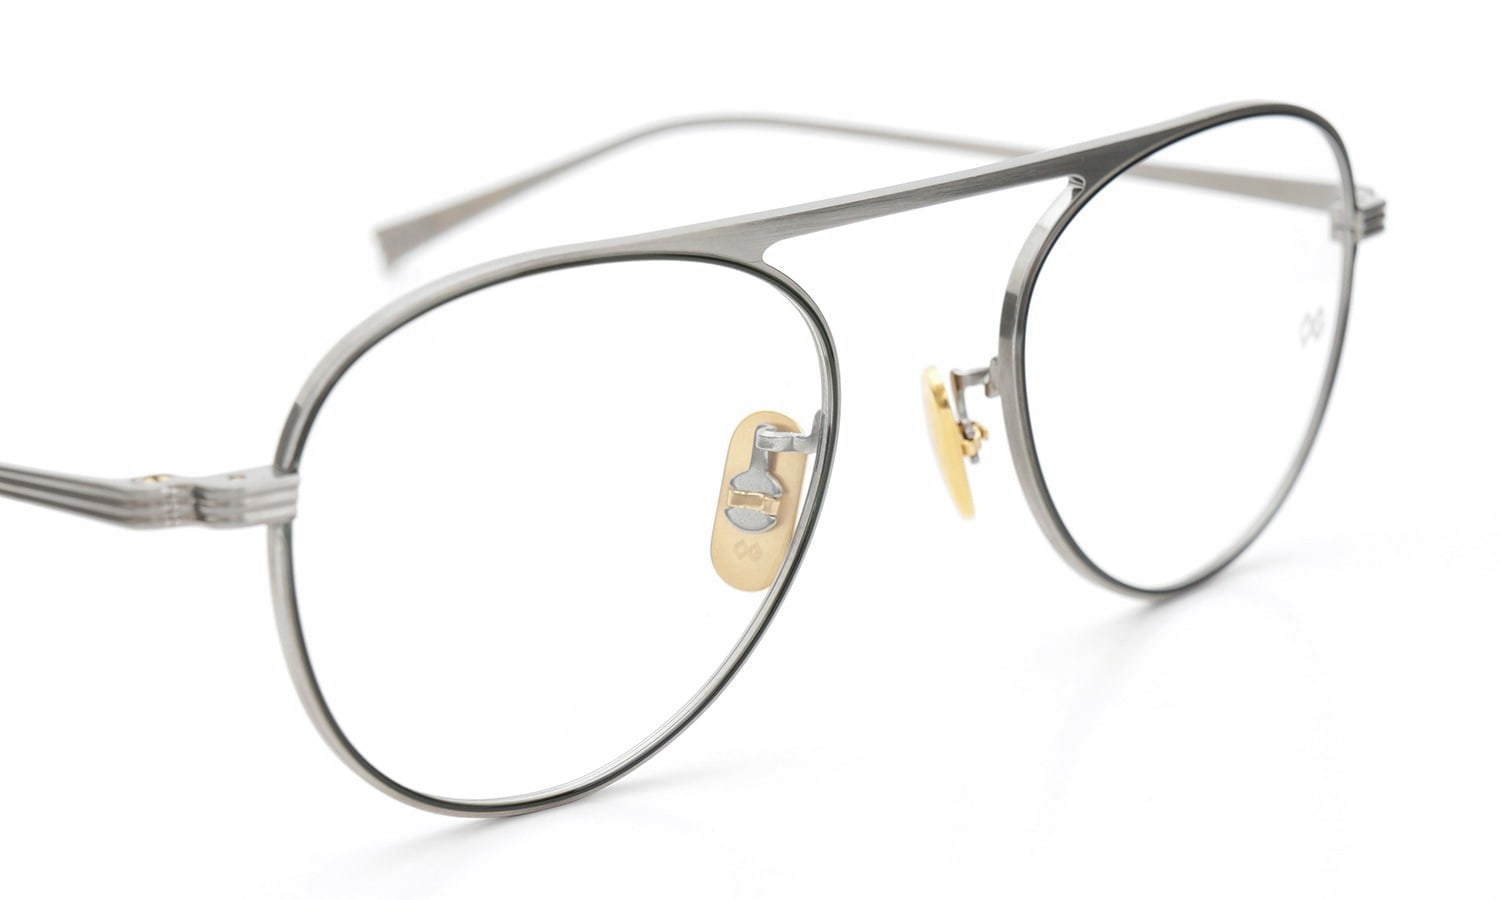 OG×OLIVERGOLDSMITH Re.TIPTON Col.030